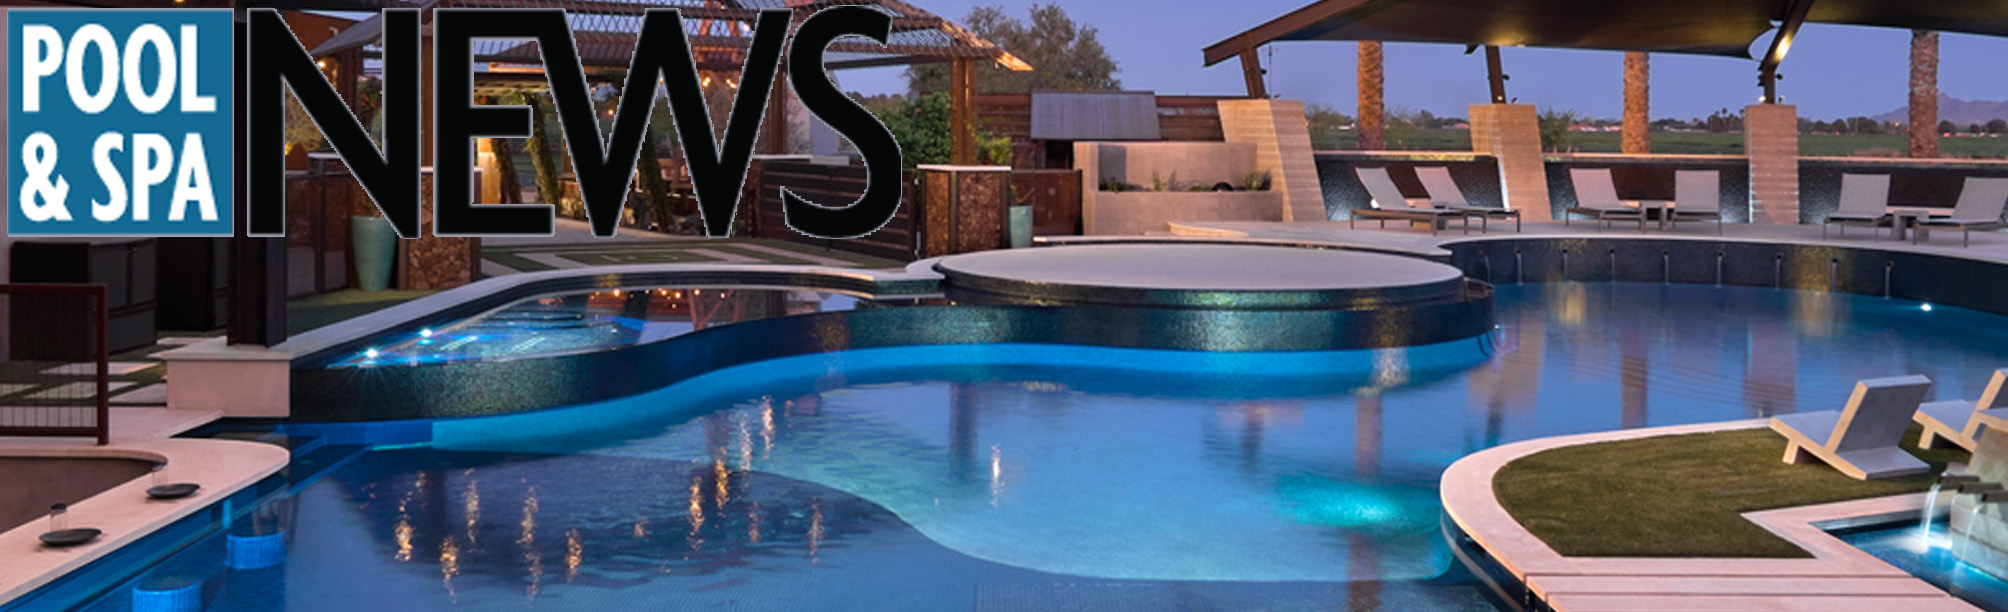 Pool and spa news masters of design 2014 alpentile for Pool design 2014